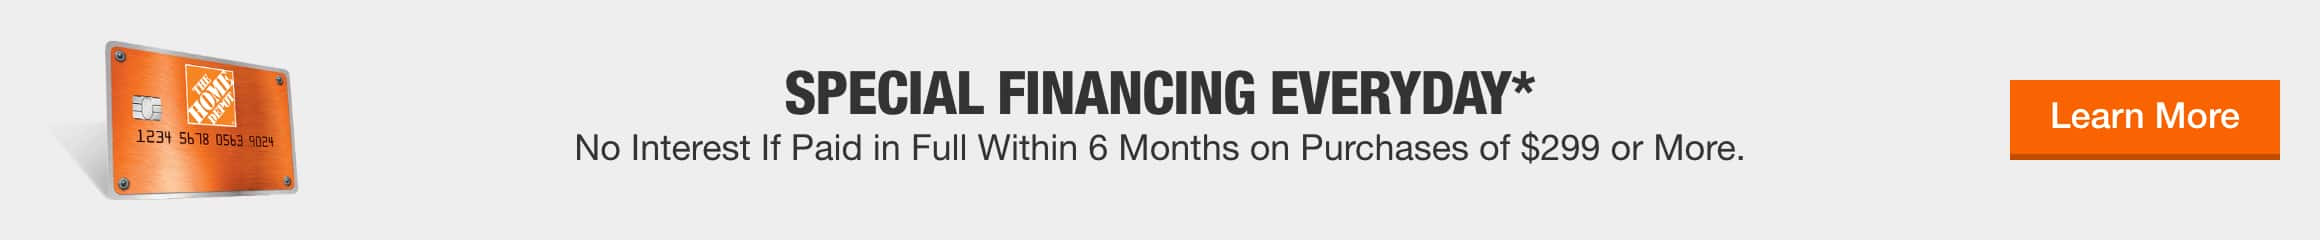 Special Financing Everyday*